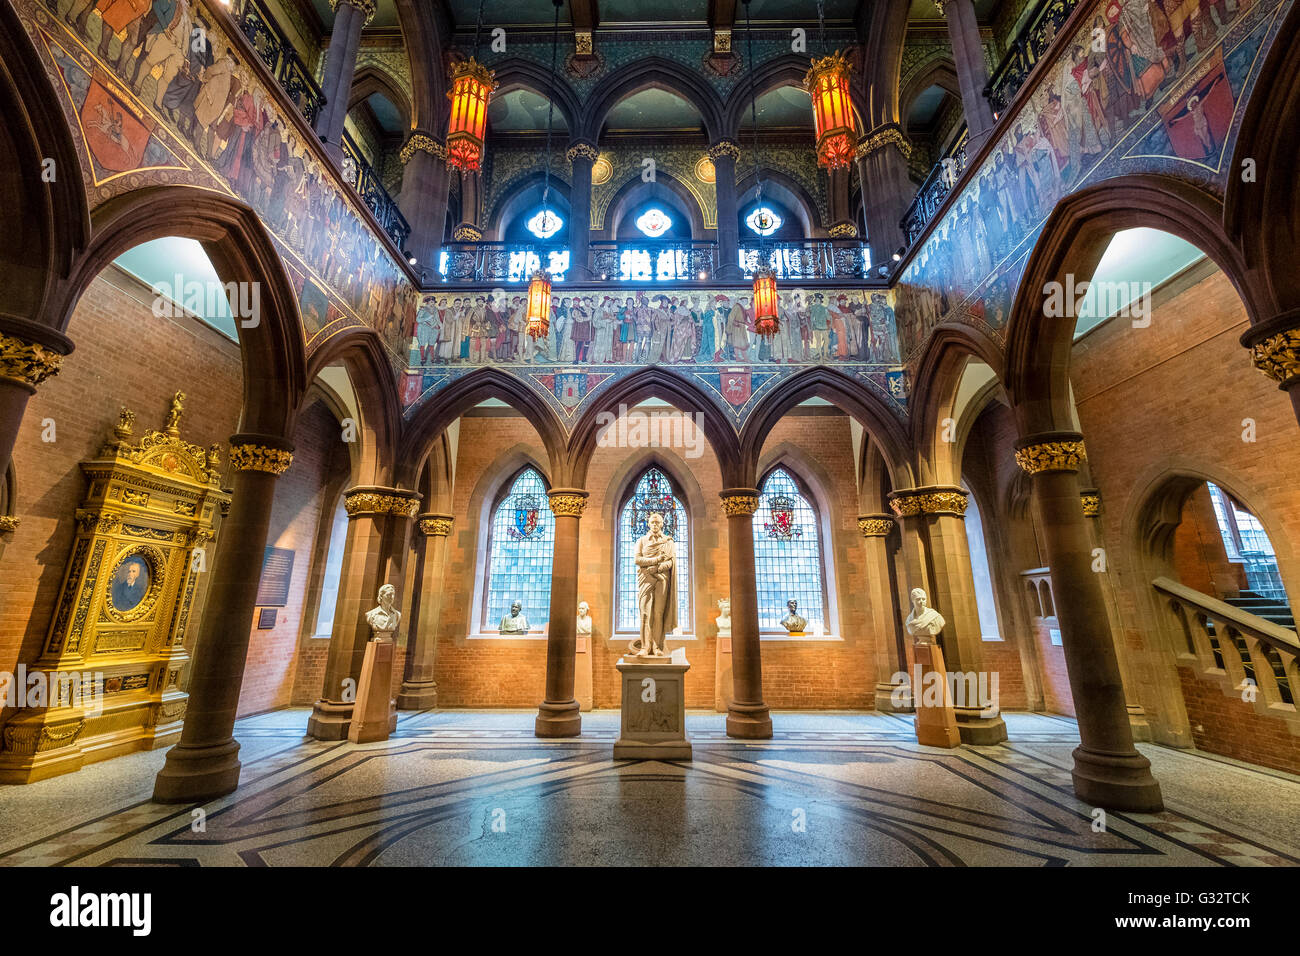 interior of scottish national portrait gallery in edinburgh stock photo  royalty free image